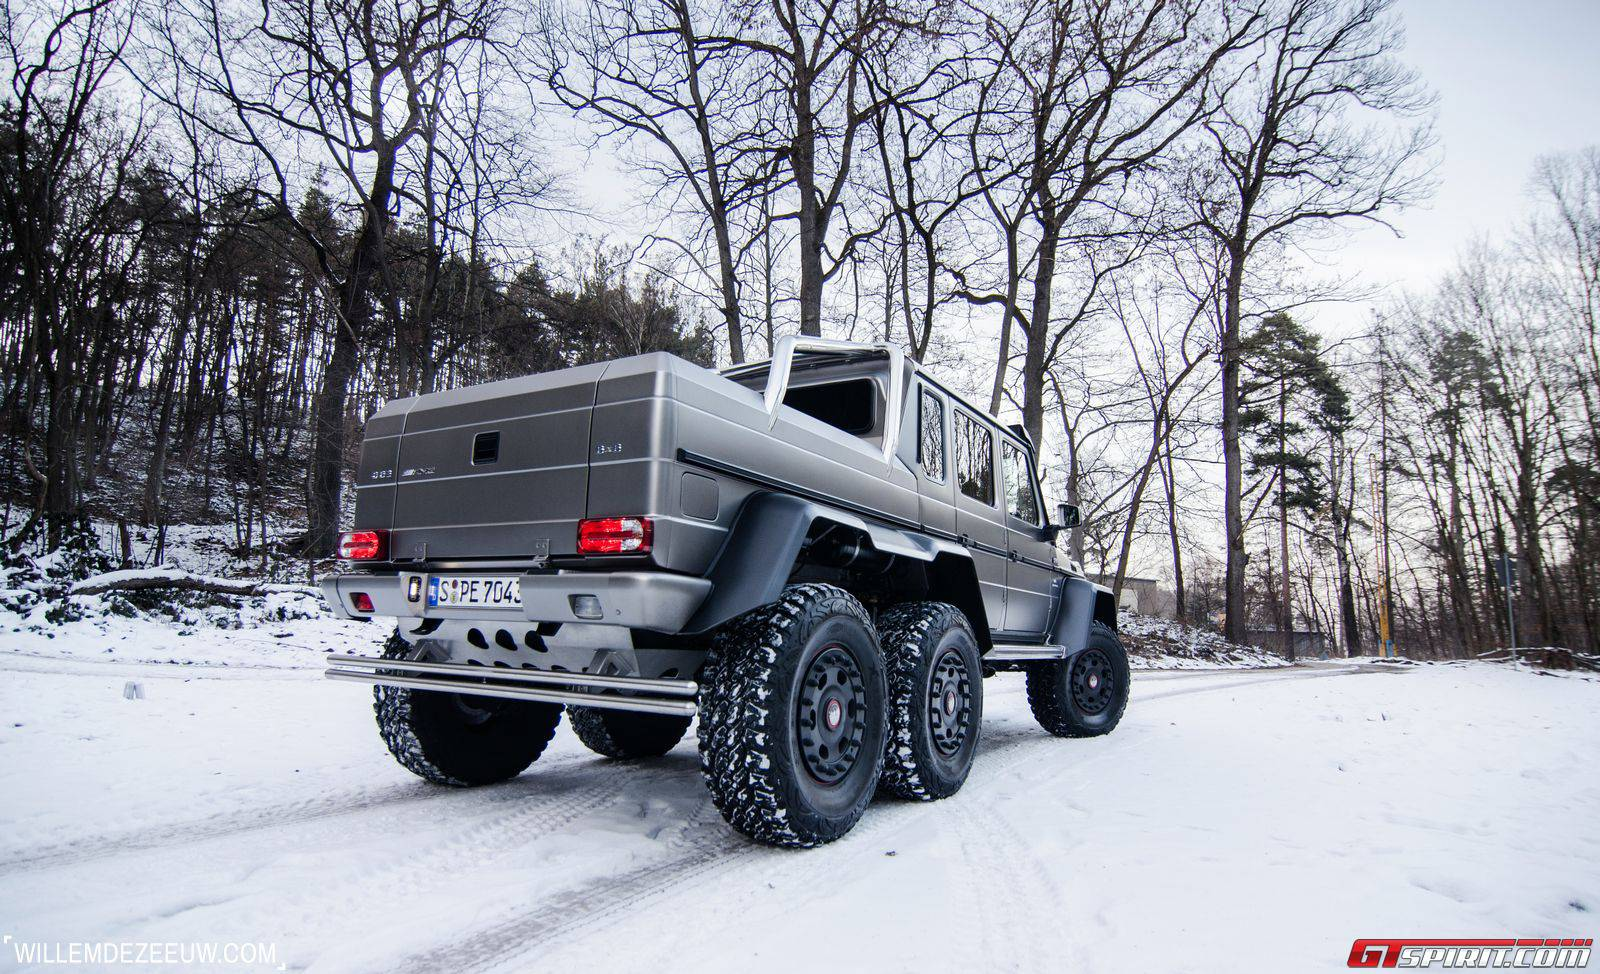 Mercedes benz g63 amg 6x6 winter wonderland photoshoot for Mercedes benz g63 6x6 amg